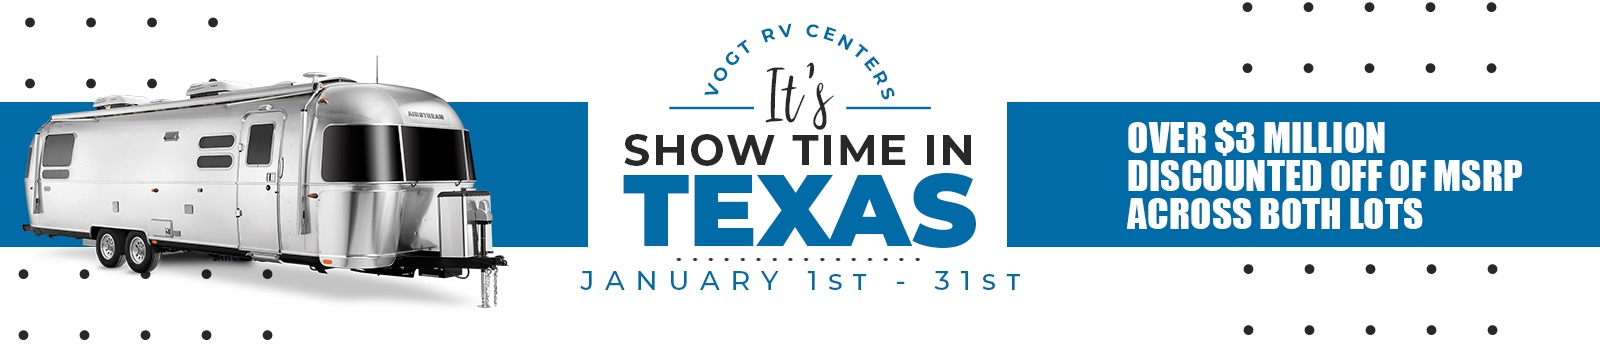 Show Time in Texas